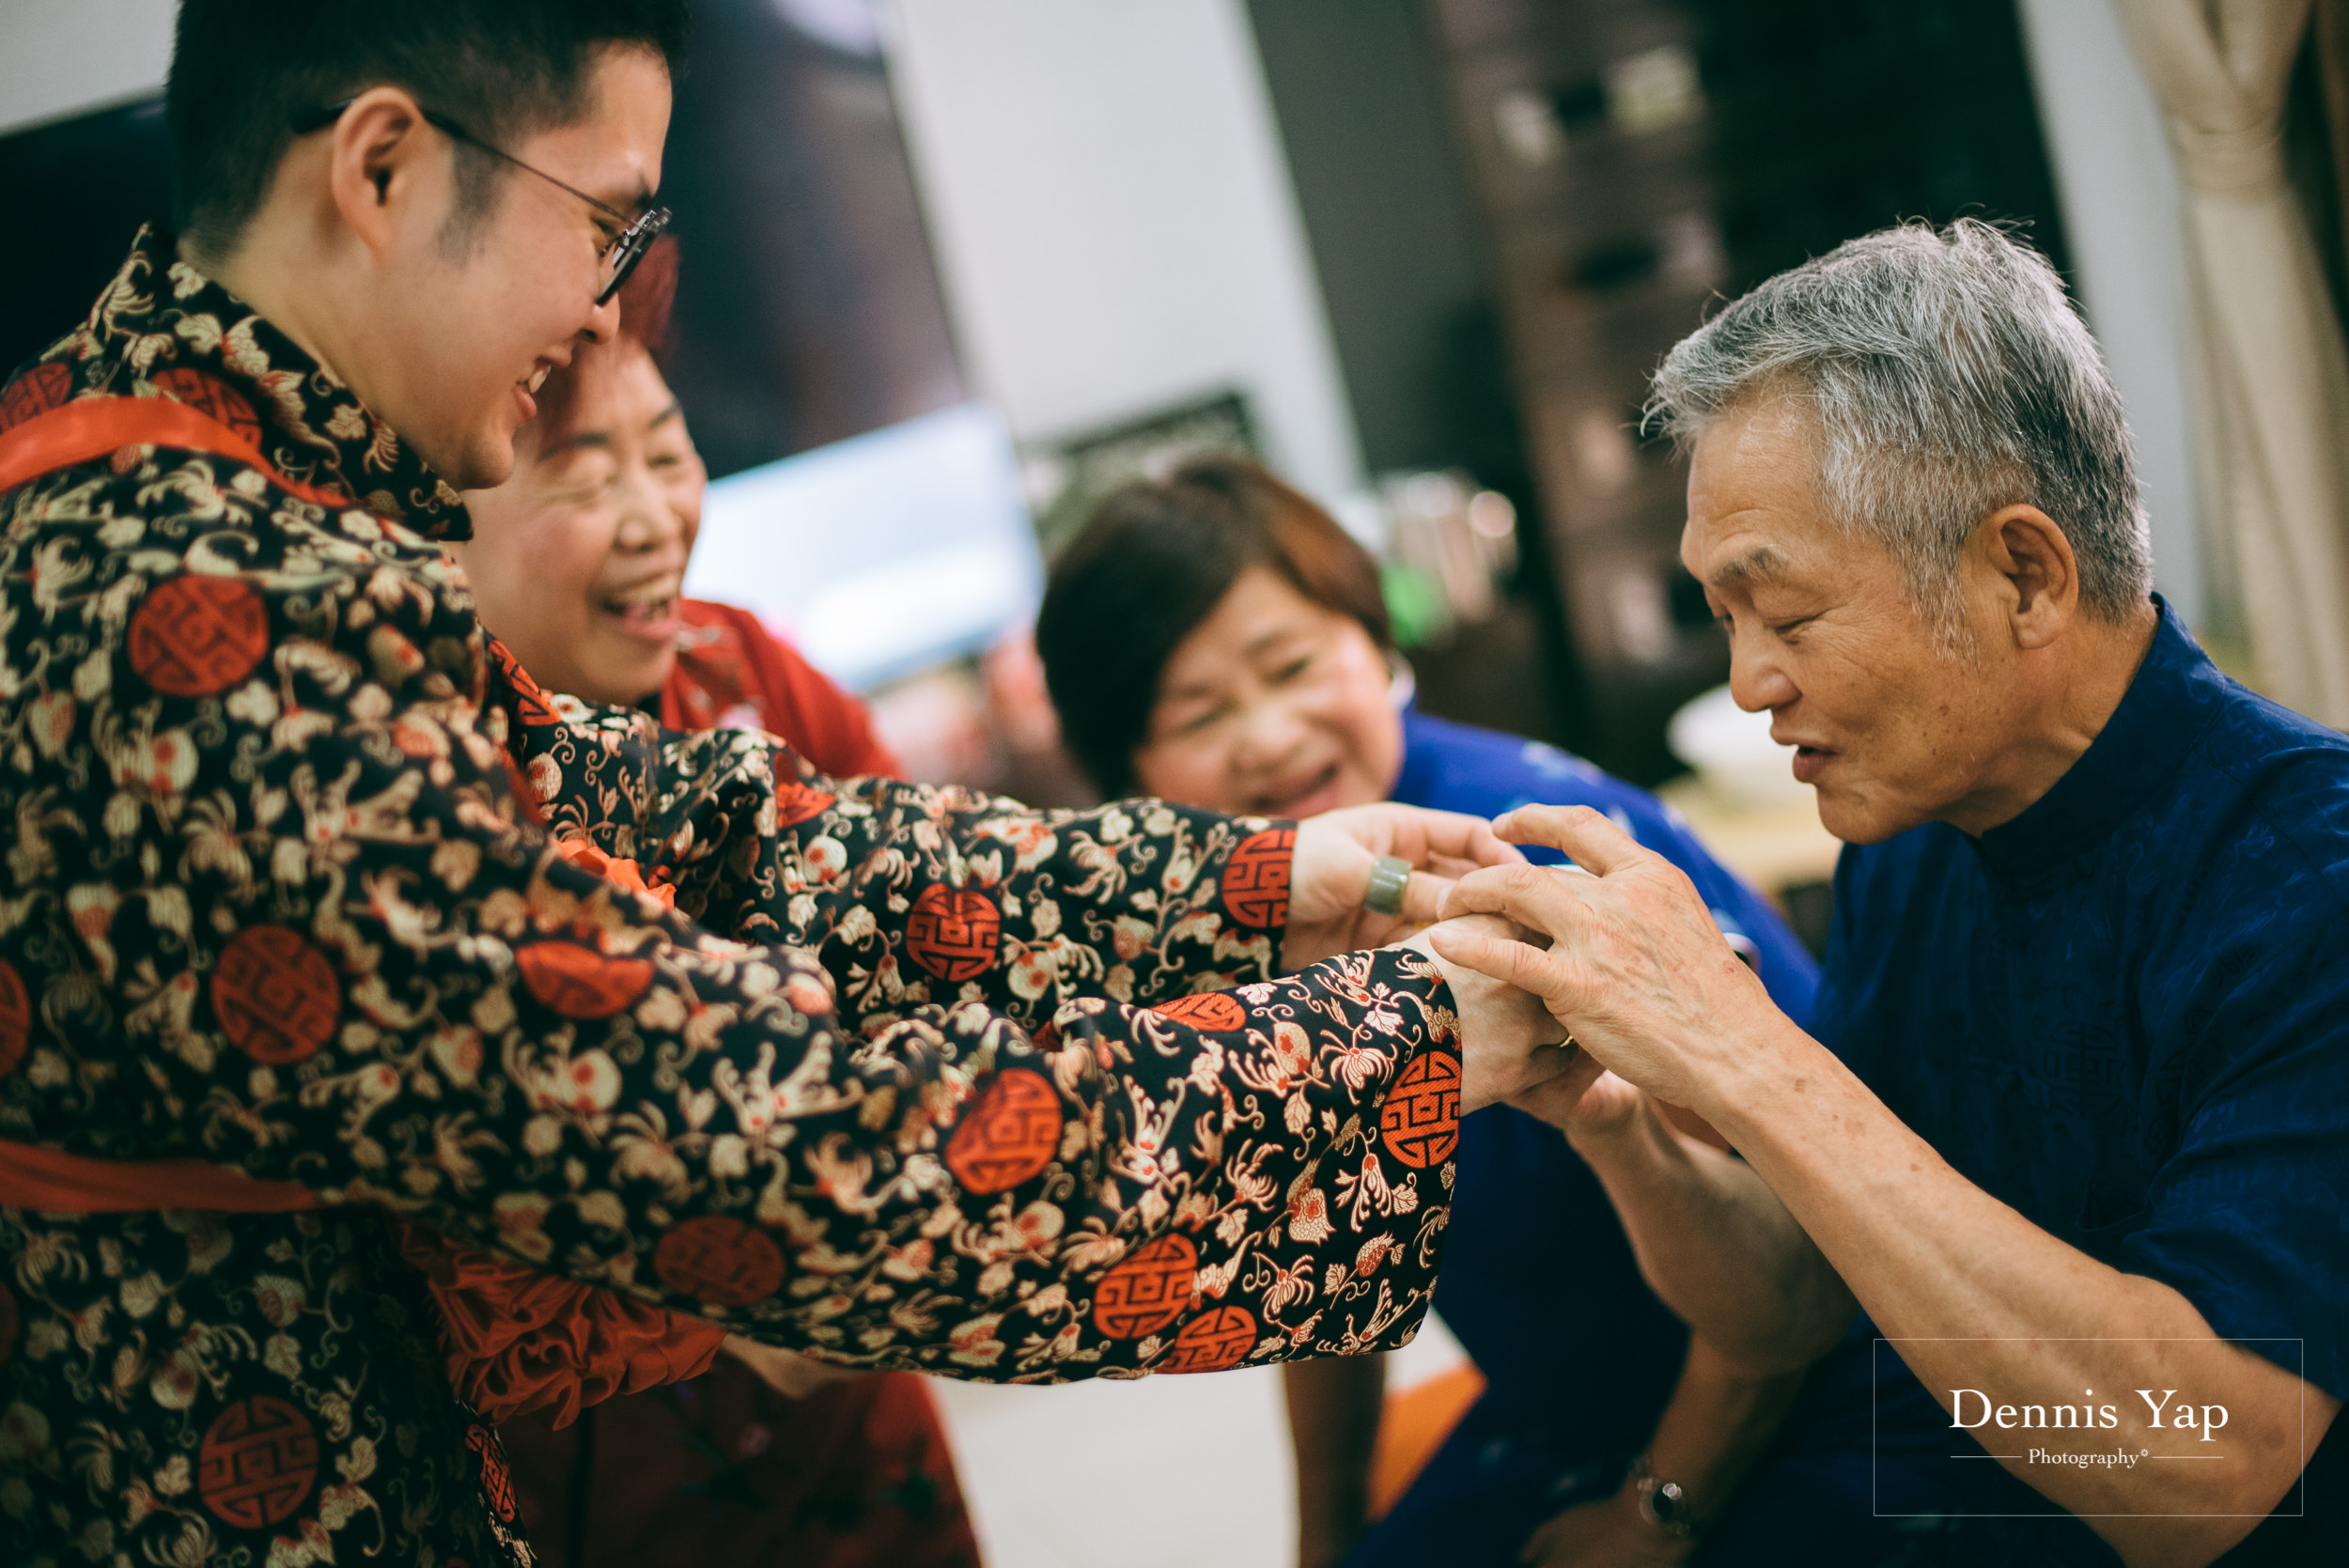 bobby fiona dennis yap photography malaysia wedding photographer chinese traditional-85.jpg